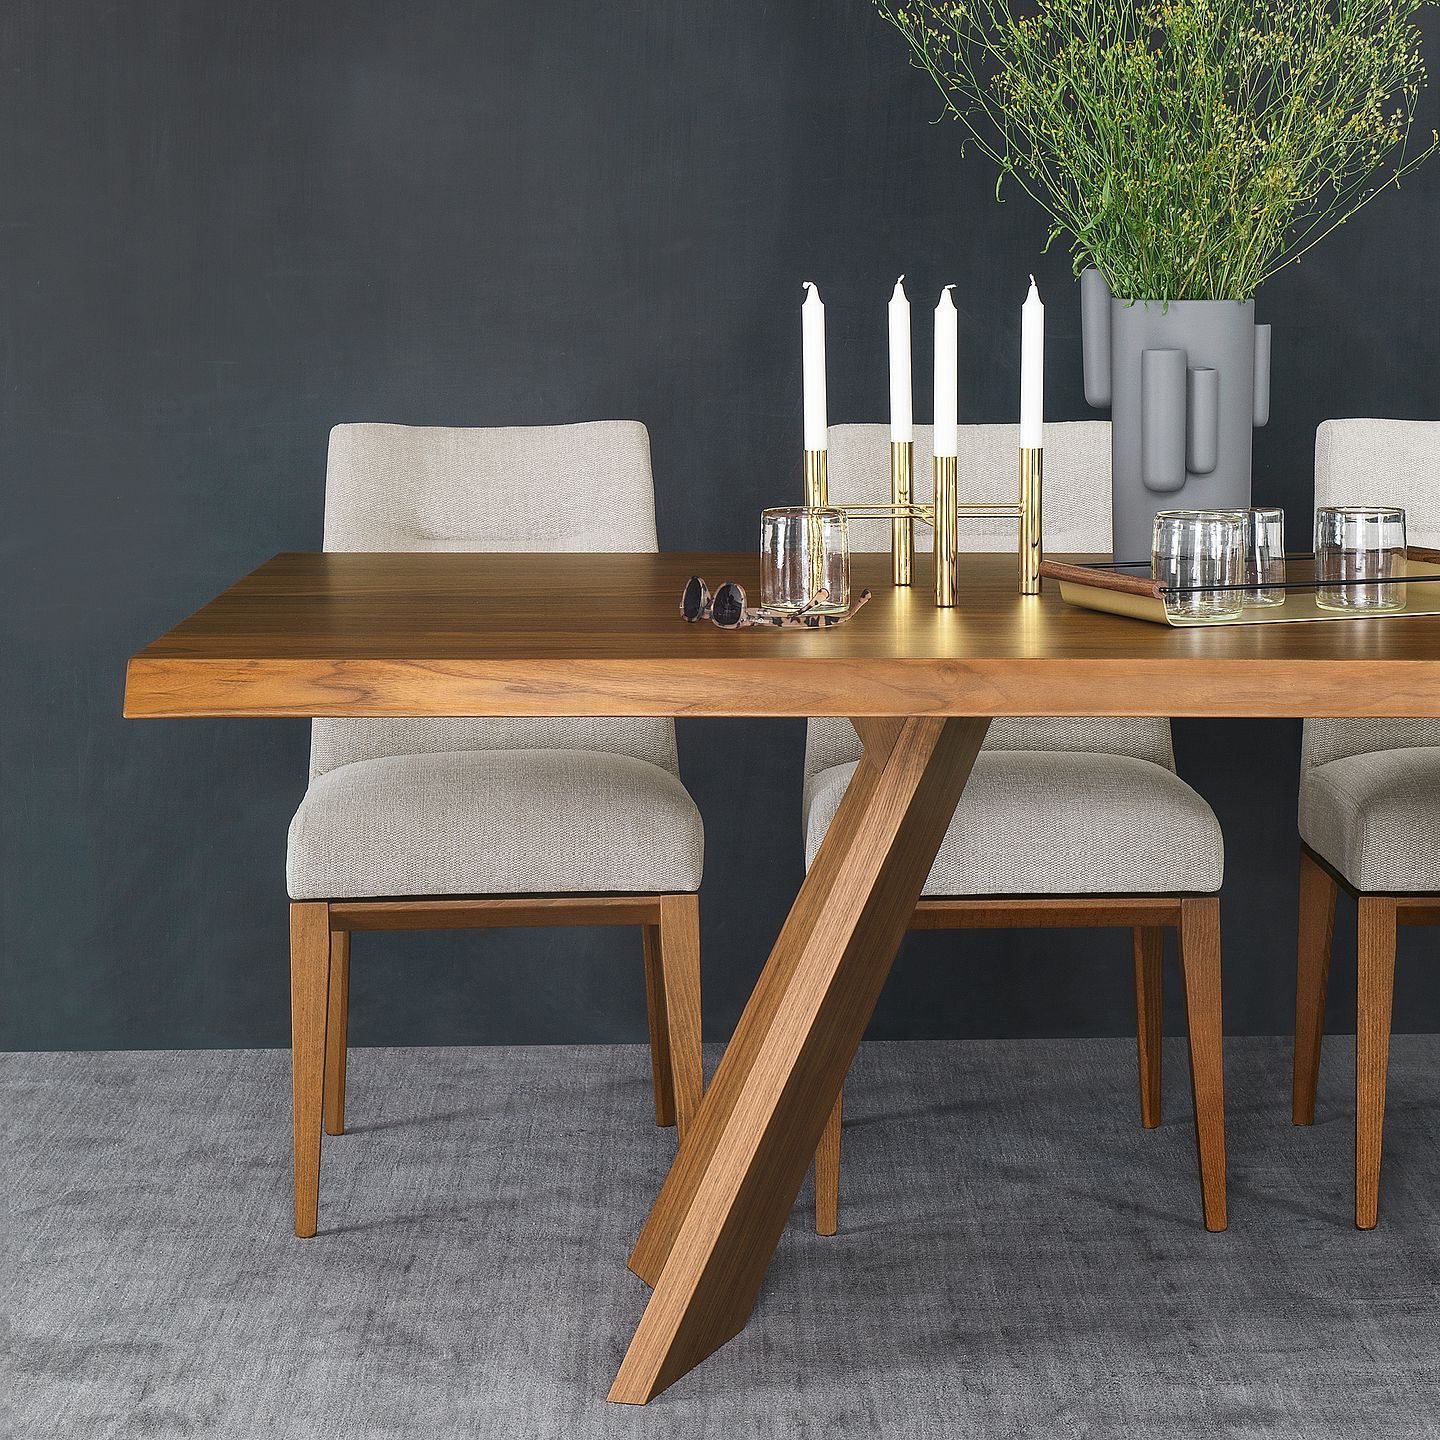 Current Home Furniture: Italian Design Furnishingcalligaris – Calligaris Throughout North Reading 5 Piece Dining Table Sets (View 6 of 25)